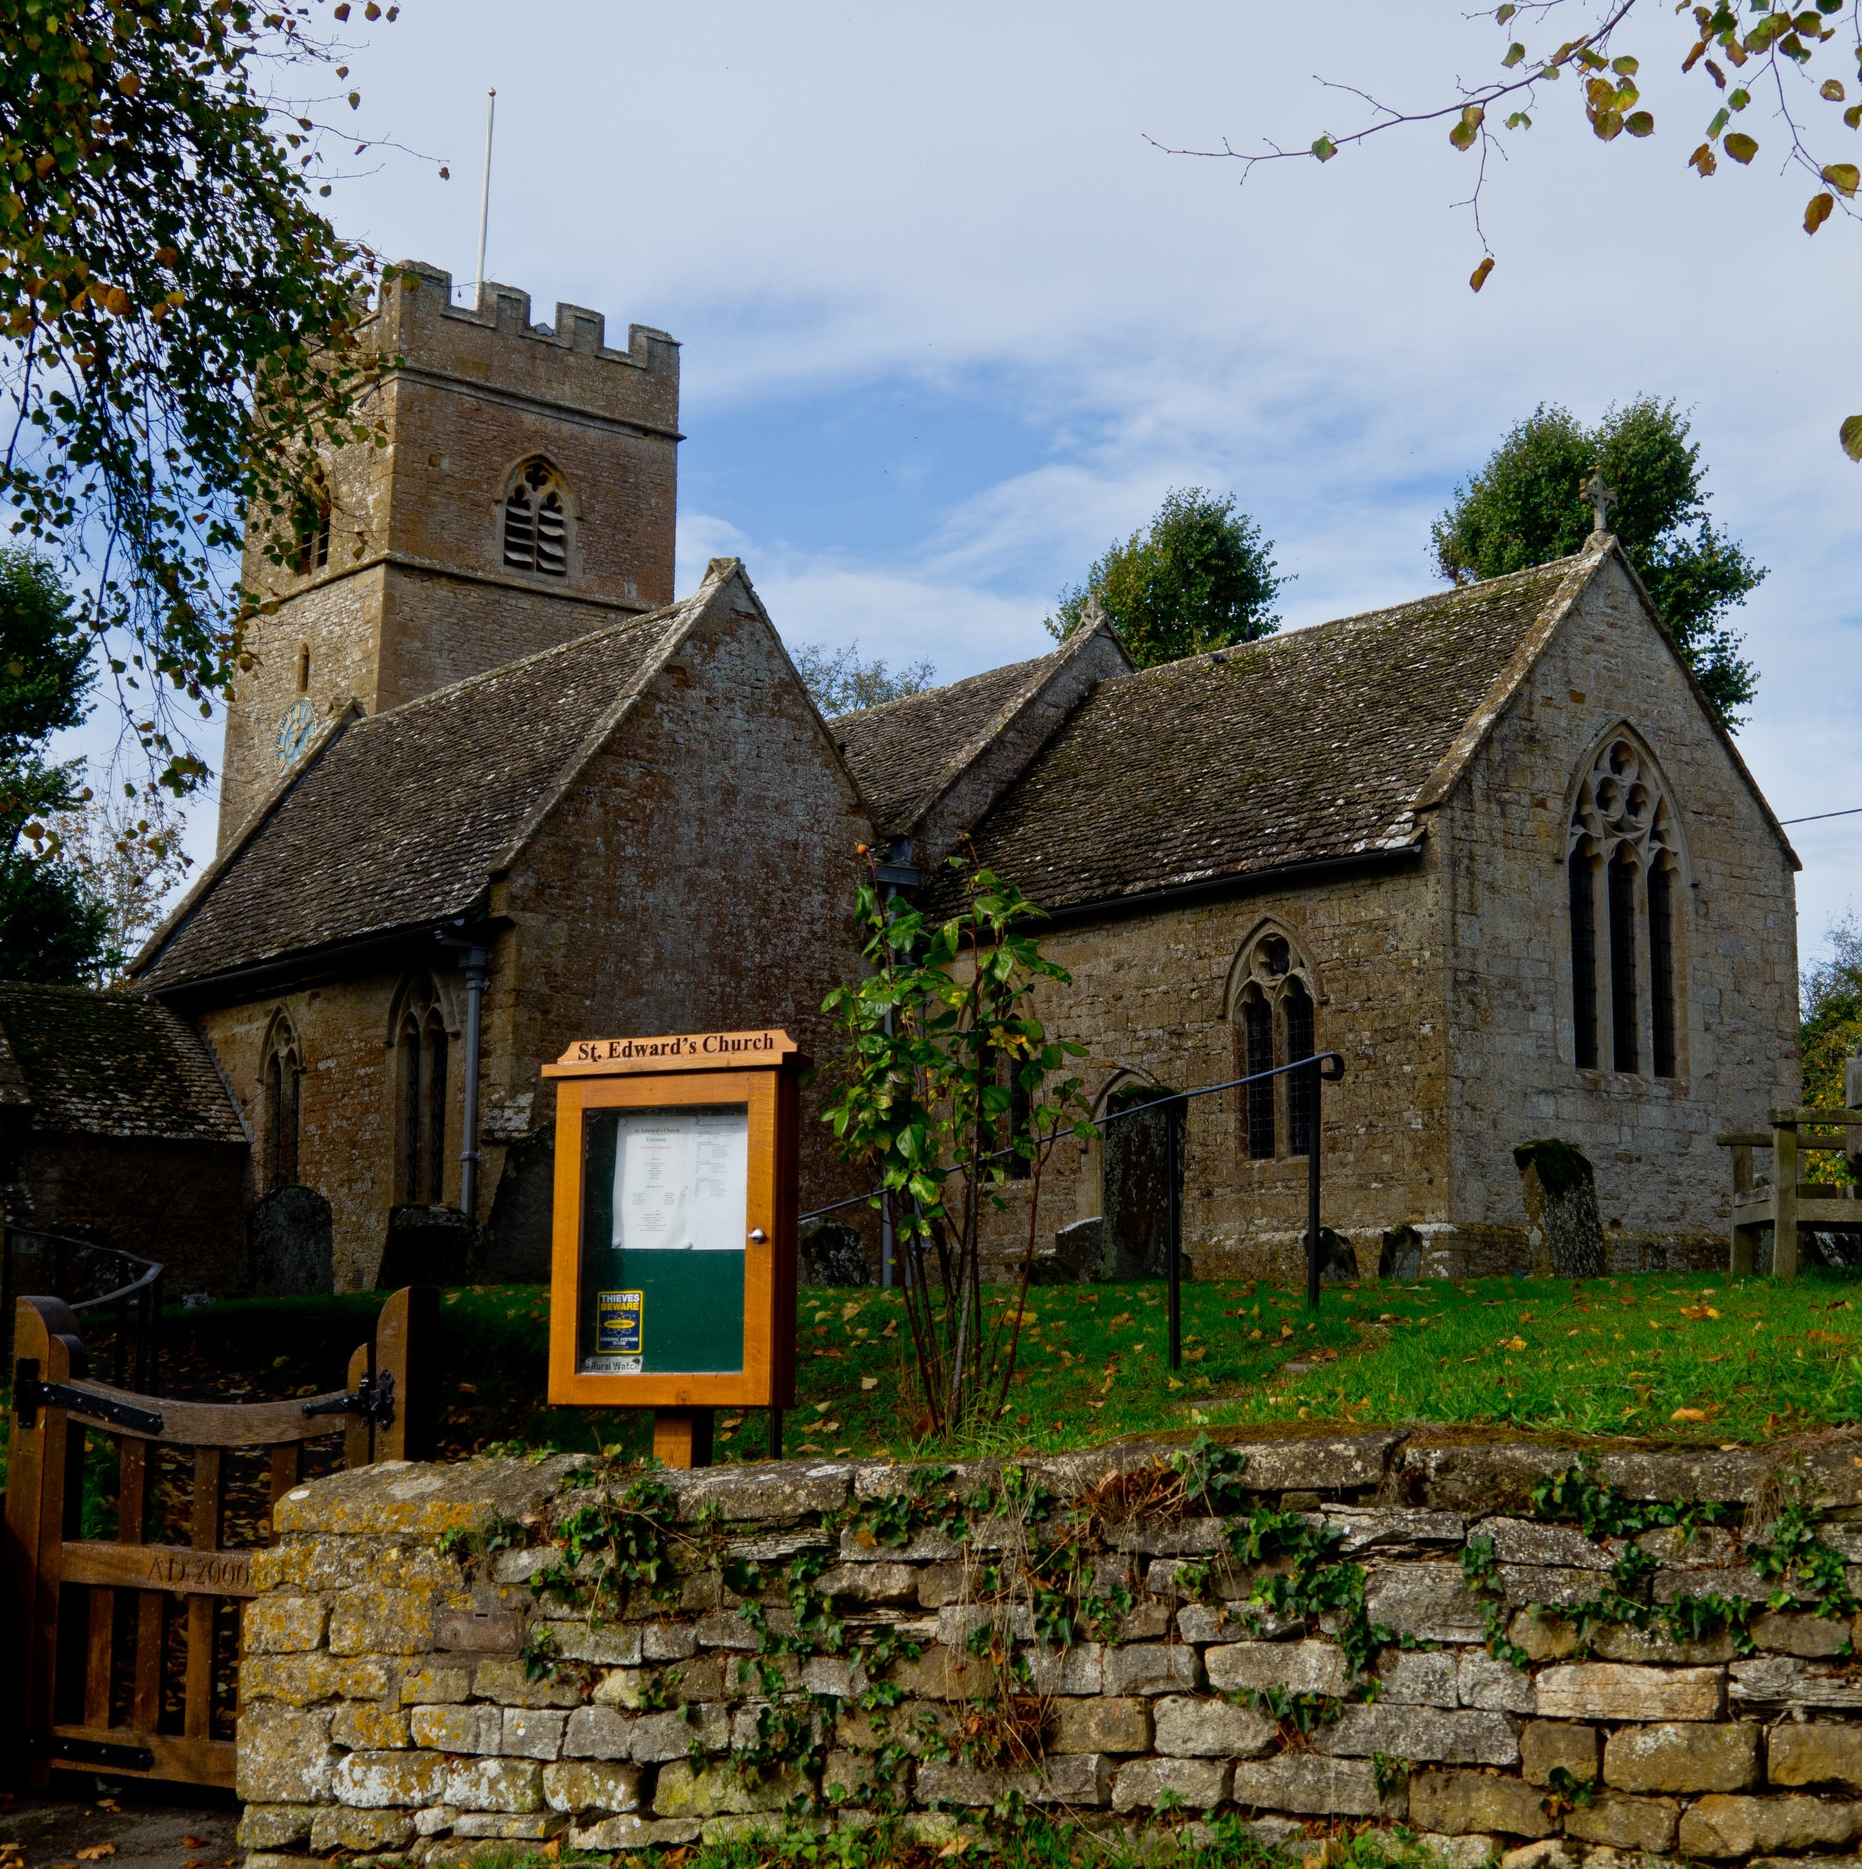 evenlode - St Edwards in Evenlode has a loyal congregation attracted to its BCP services. There are special services for festivals, which are family orientated. Please see the links below to find out about forthcoming services and events.The parish of Evenlode is in early Saxon records, and was under the Jurisdiction of Evesham Abbey prior to the Reformation. The church is mainly 13th century, with a Norman arch, early English lancet windows and an aura of peace which reflects both the beauty of the village in which it is situated, and the centuries of prayer and worship which it has seen.ChurchwardensMrs. Virginia Symons Tel: 01608 650608Mr. Mark Dancer Tel: 01608 651 653